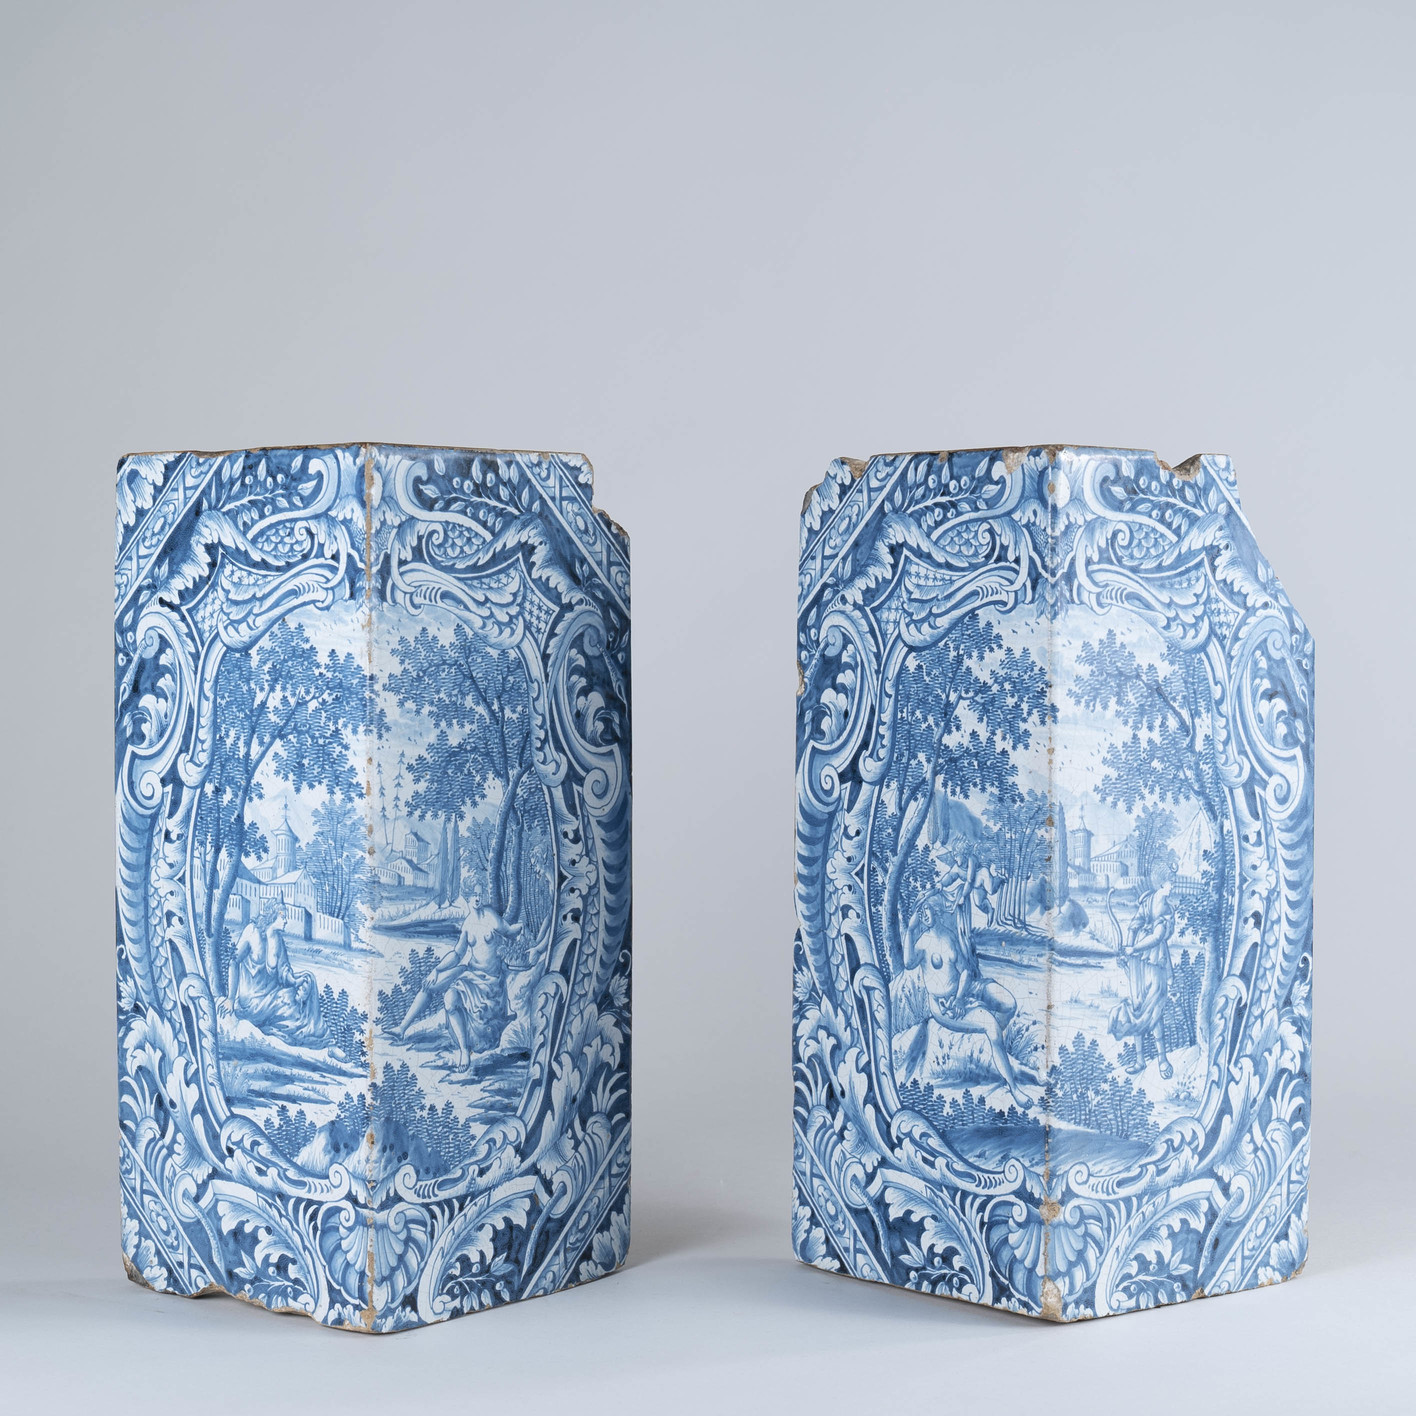 Rare Pair of Dutch Delft Stove Tiles, circa 1730